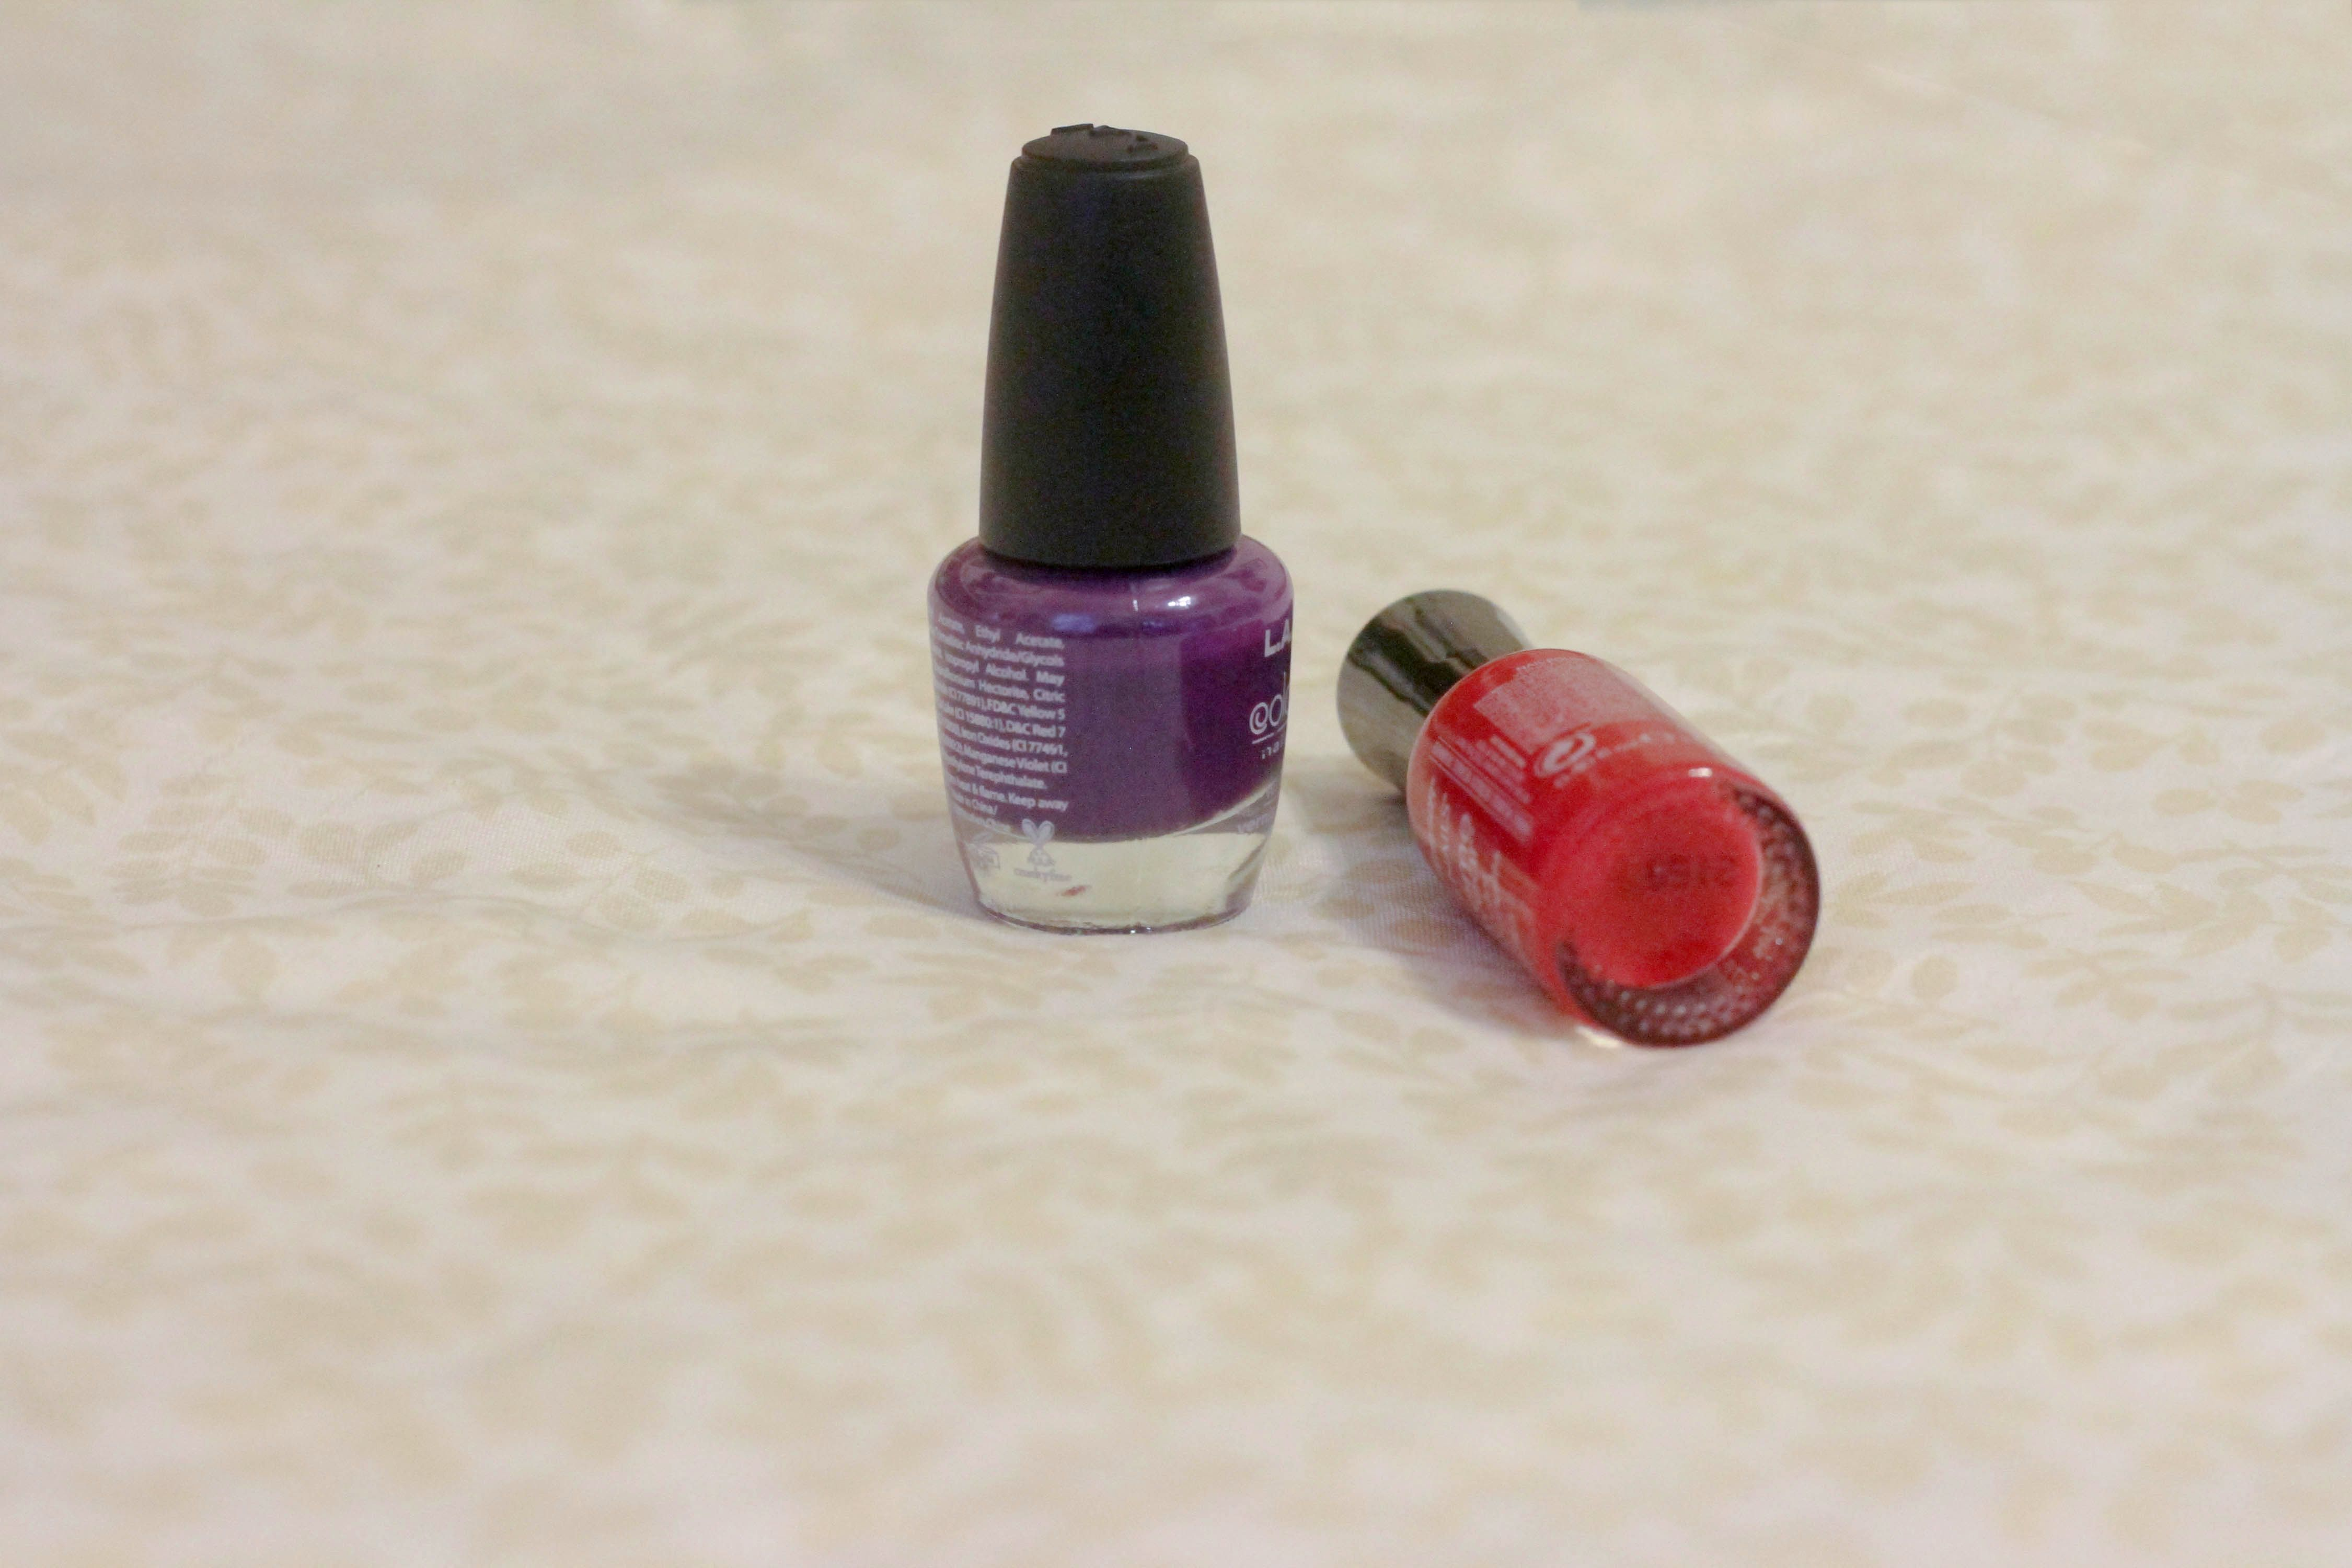 How To Remove Finger Nail Polish From Bed Sheets Ehow Fingernail Polish Nail Polish On Carpet Nail Polish Remover